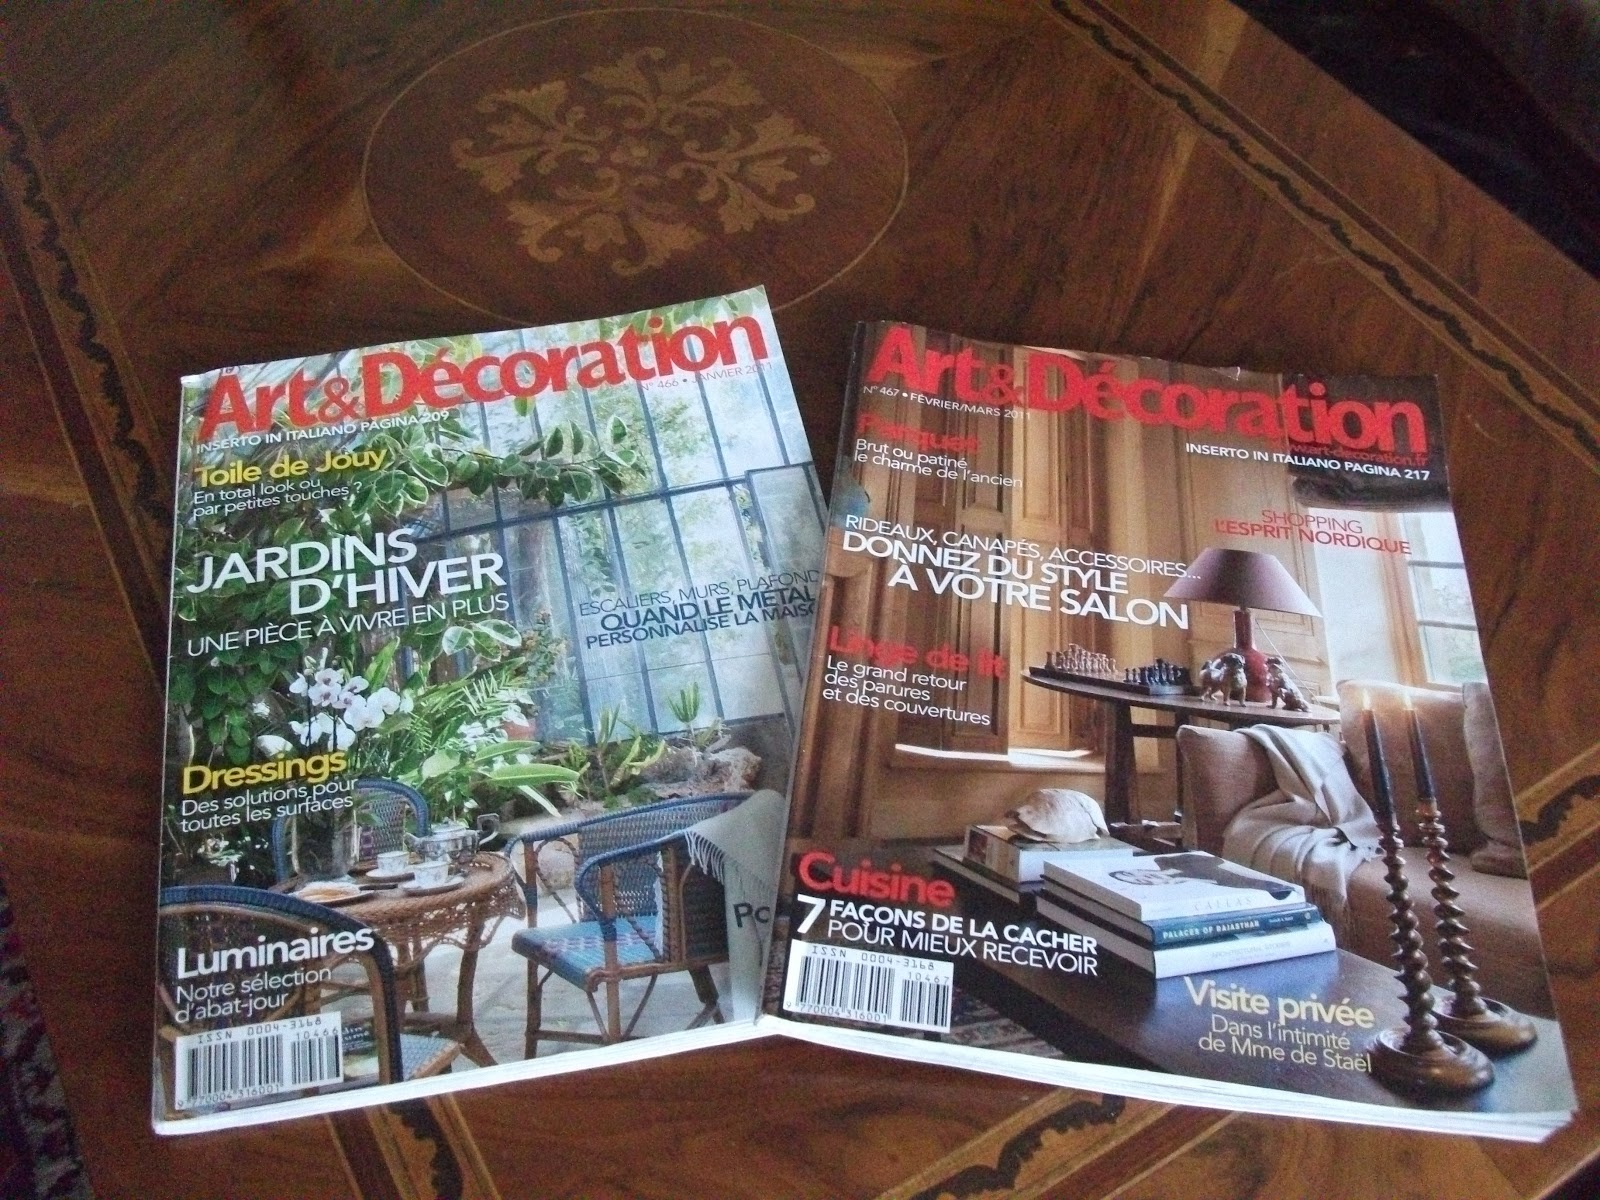 La brocante de blanche art et d coration for Art e decoration rivista